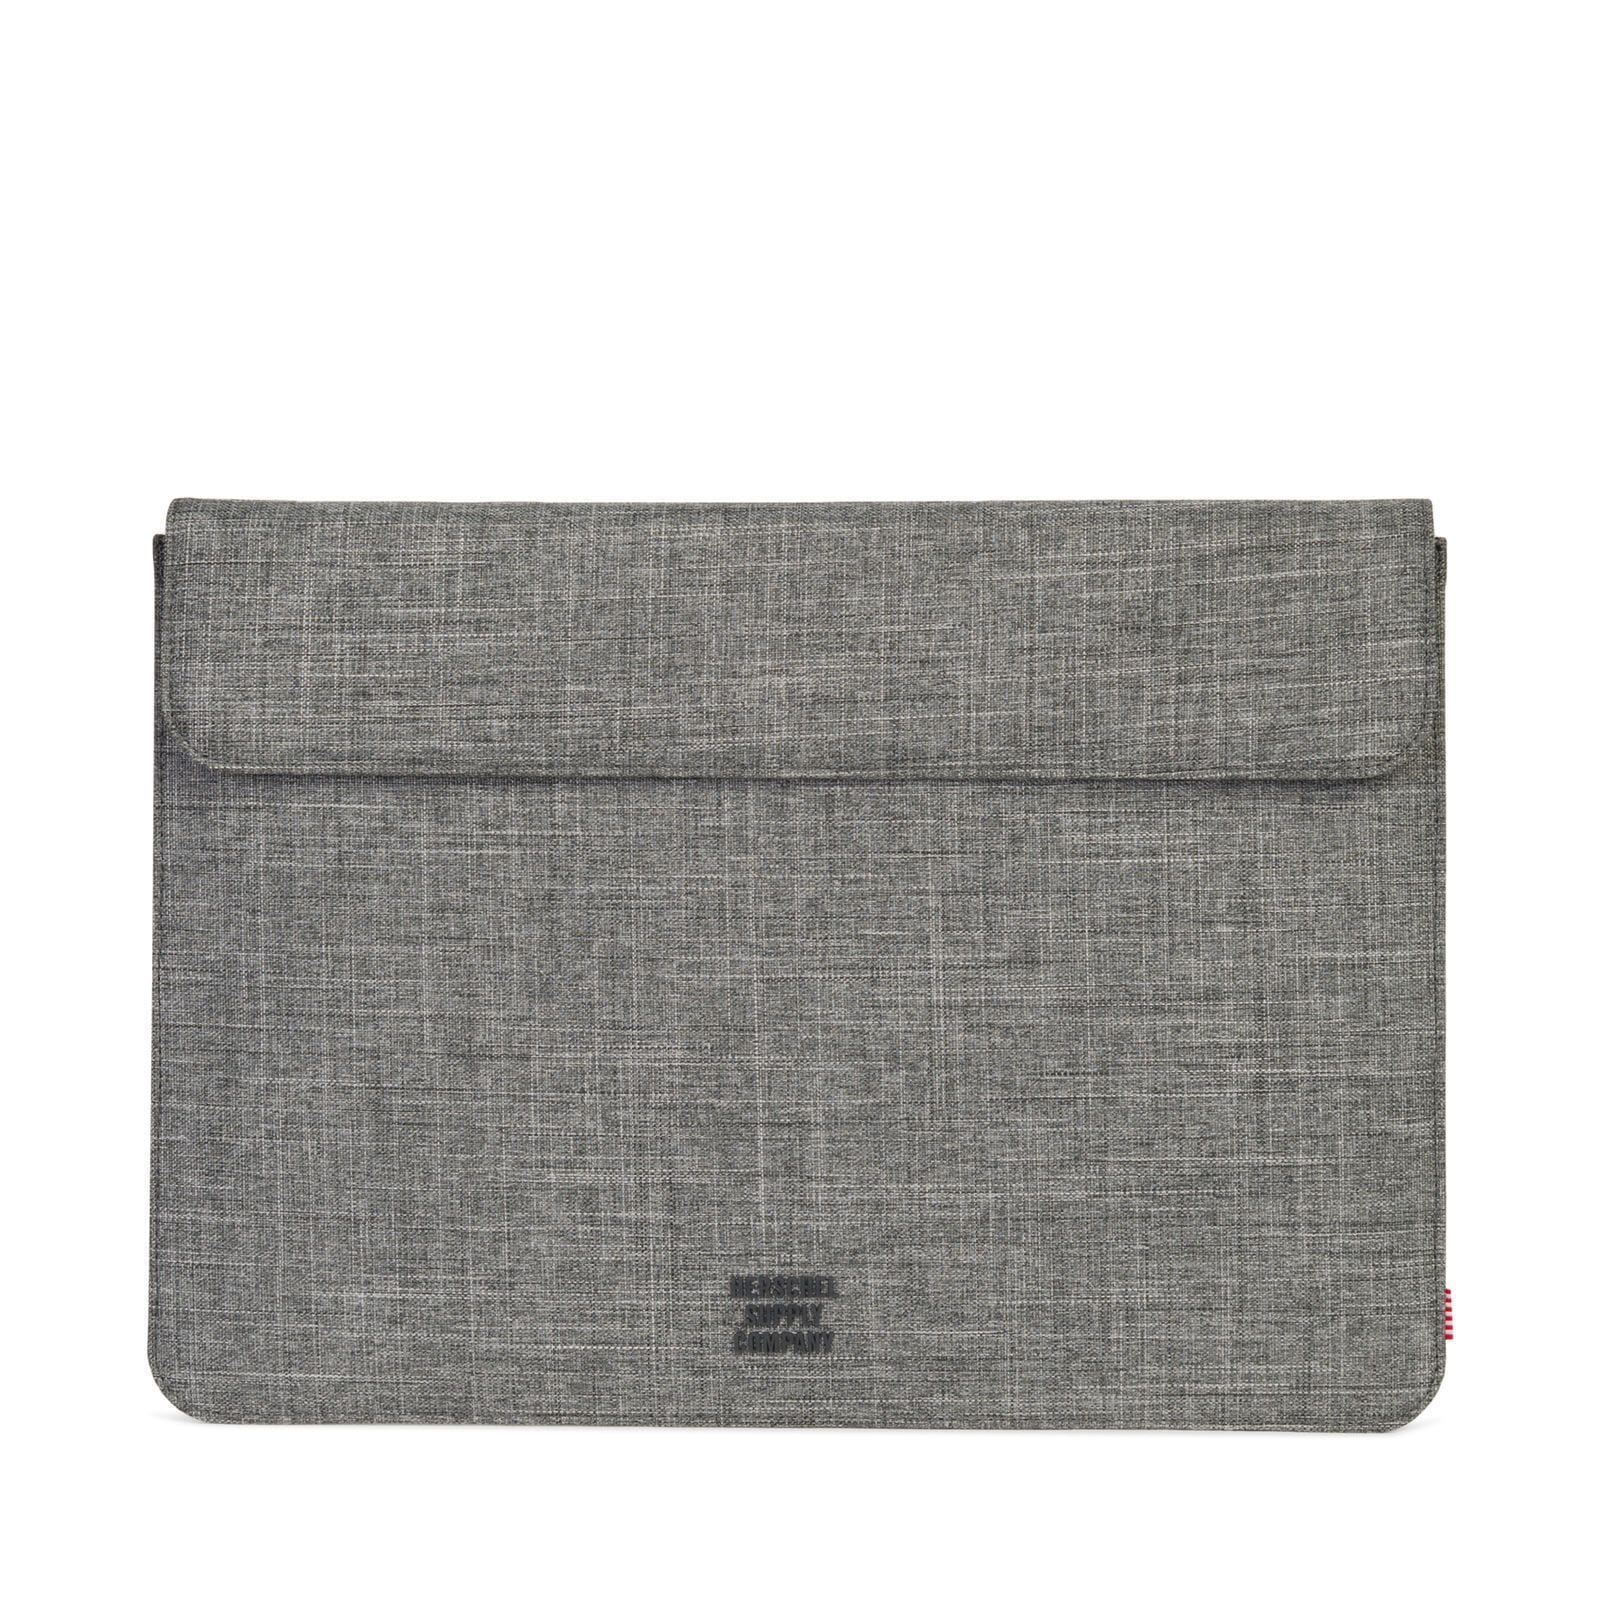 Herschel Spokane Sleeve for 15 inch MacBook Raven Crosshatch Laptoptartó